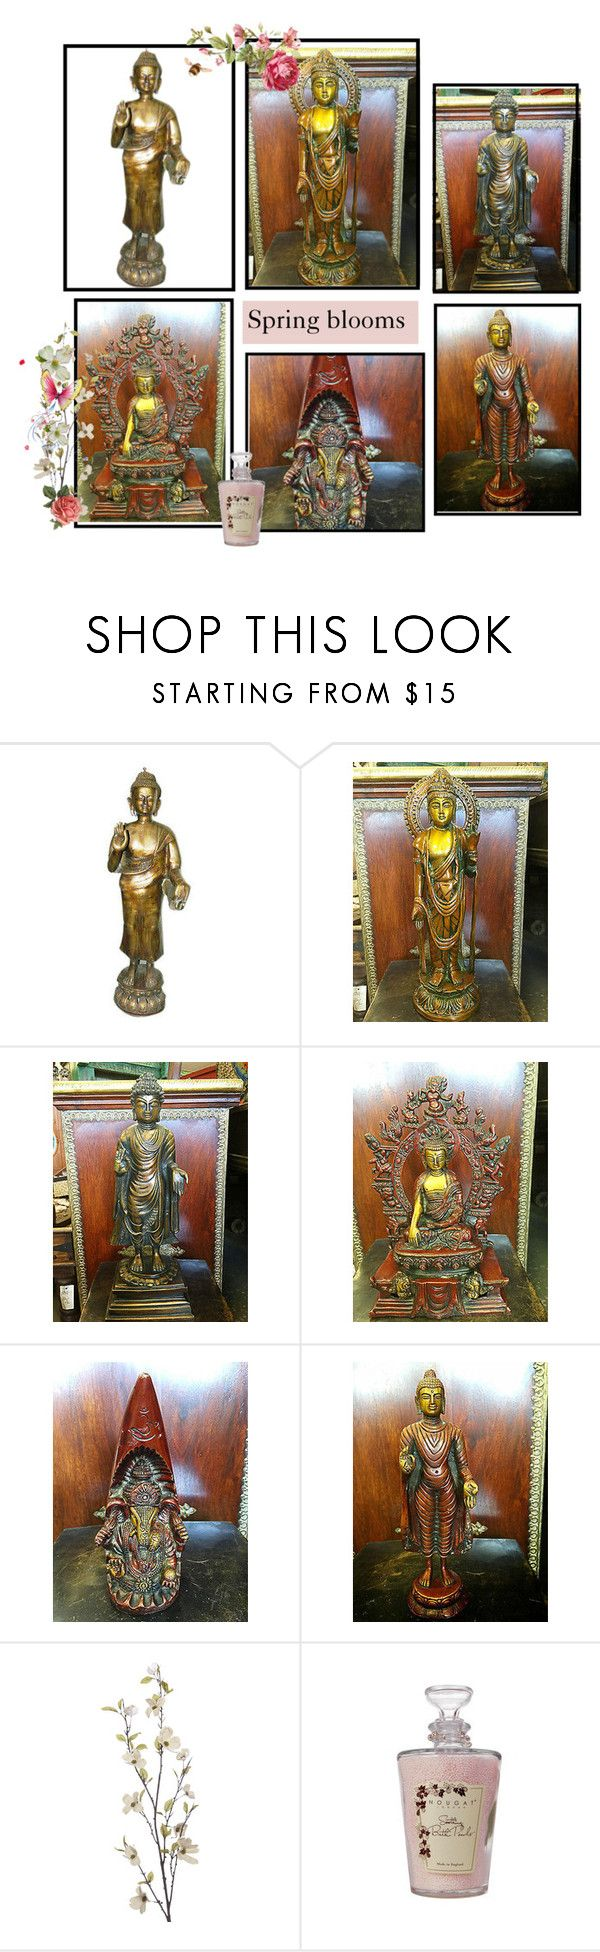 Antique Brass Statue by baydeals on Polyvore featuring interior, interiors, interior design, home, home decor, interior decorating, Pier 1 Imports and Nougat  http://stores.ebay.com/mogulgallery/BRASS-STATUES-/_i.html?_fsub=353416319&_sid=3781319&_trksid=p4634.c0.m322